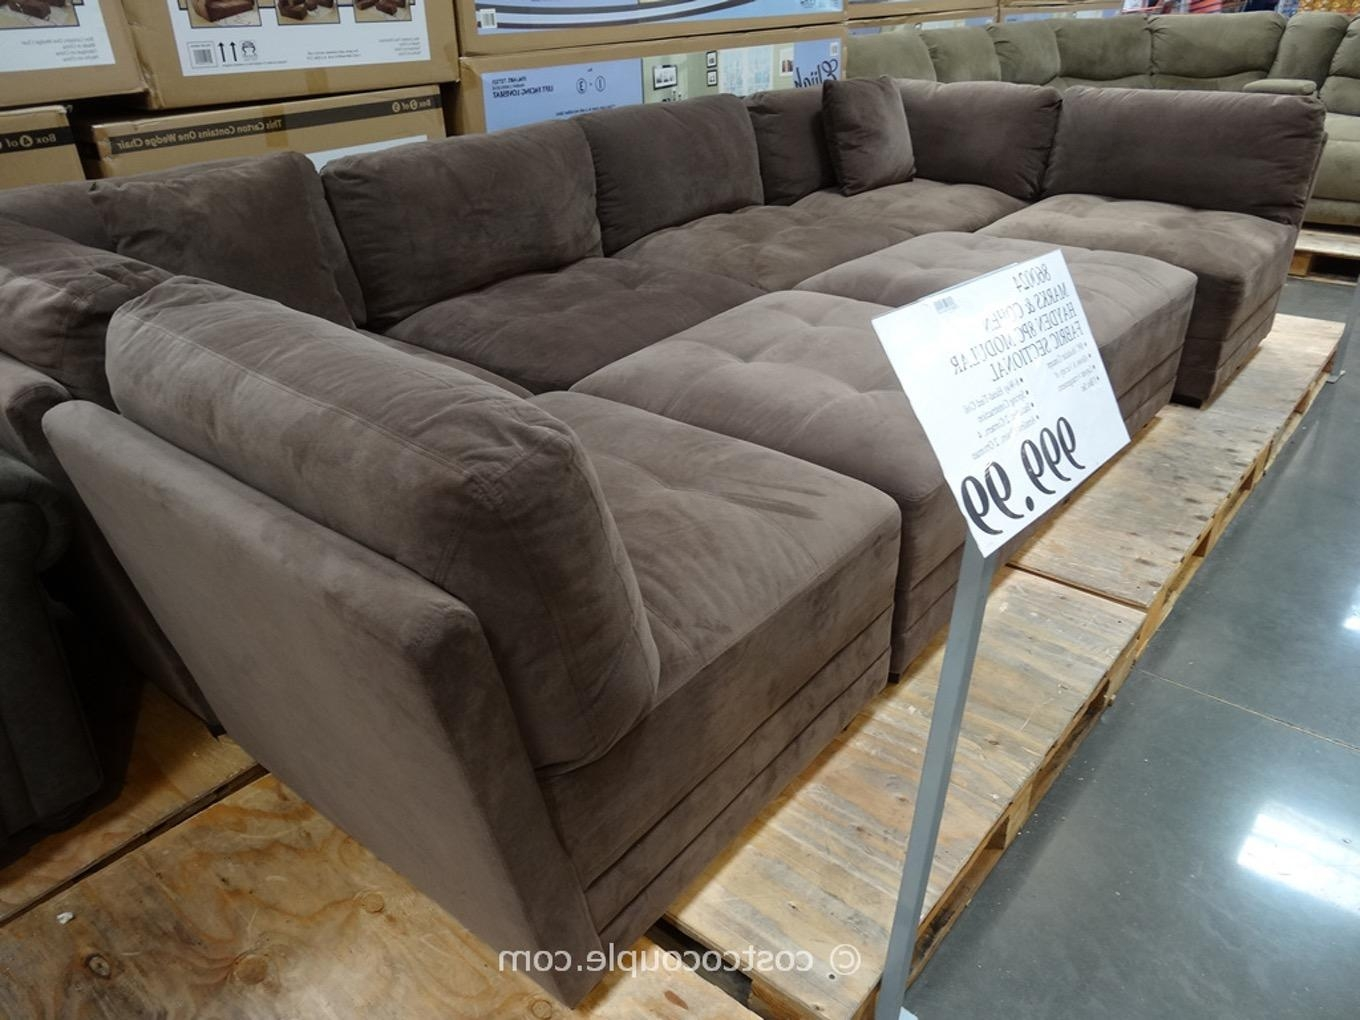 Large Sectionals Sofas Preferred Home Design Regarding Very Large Sofas (View 14 of 20)